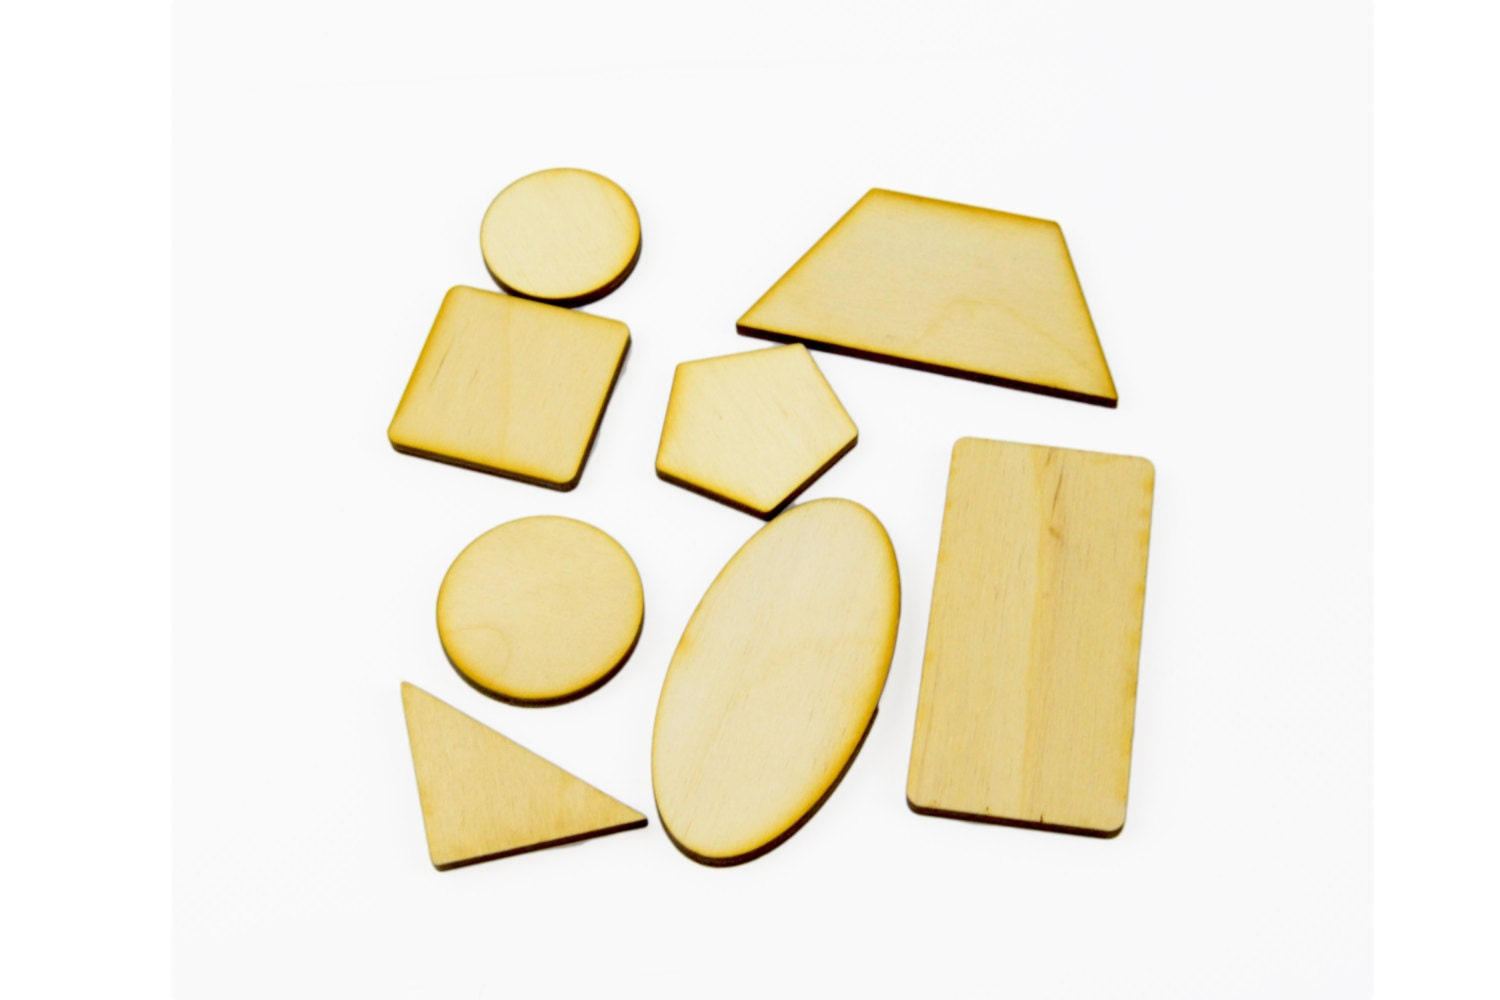 54 x wooden crafts geometrical shapes laser cut beads for Craft supplies wooden shapes